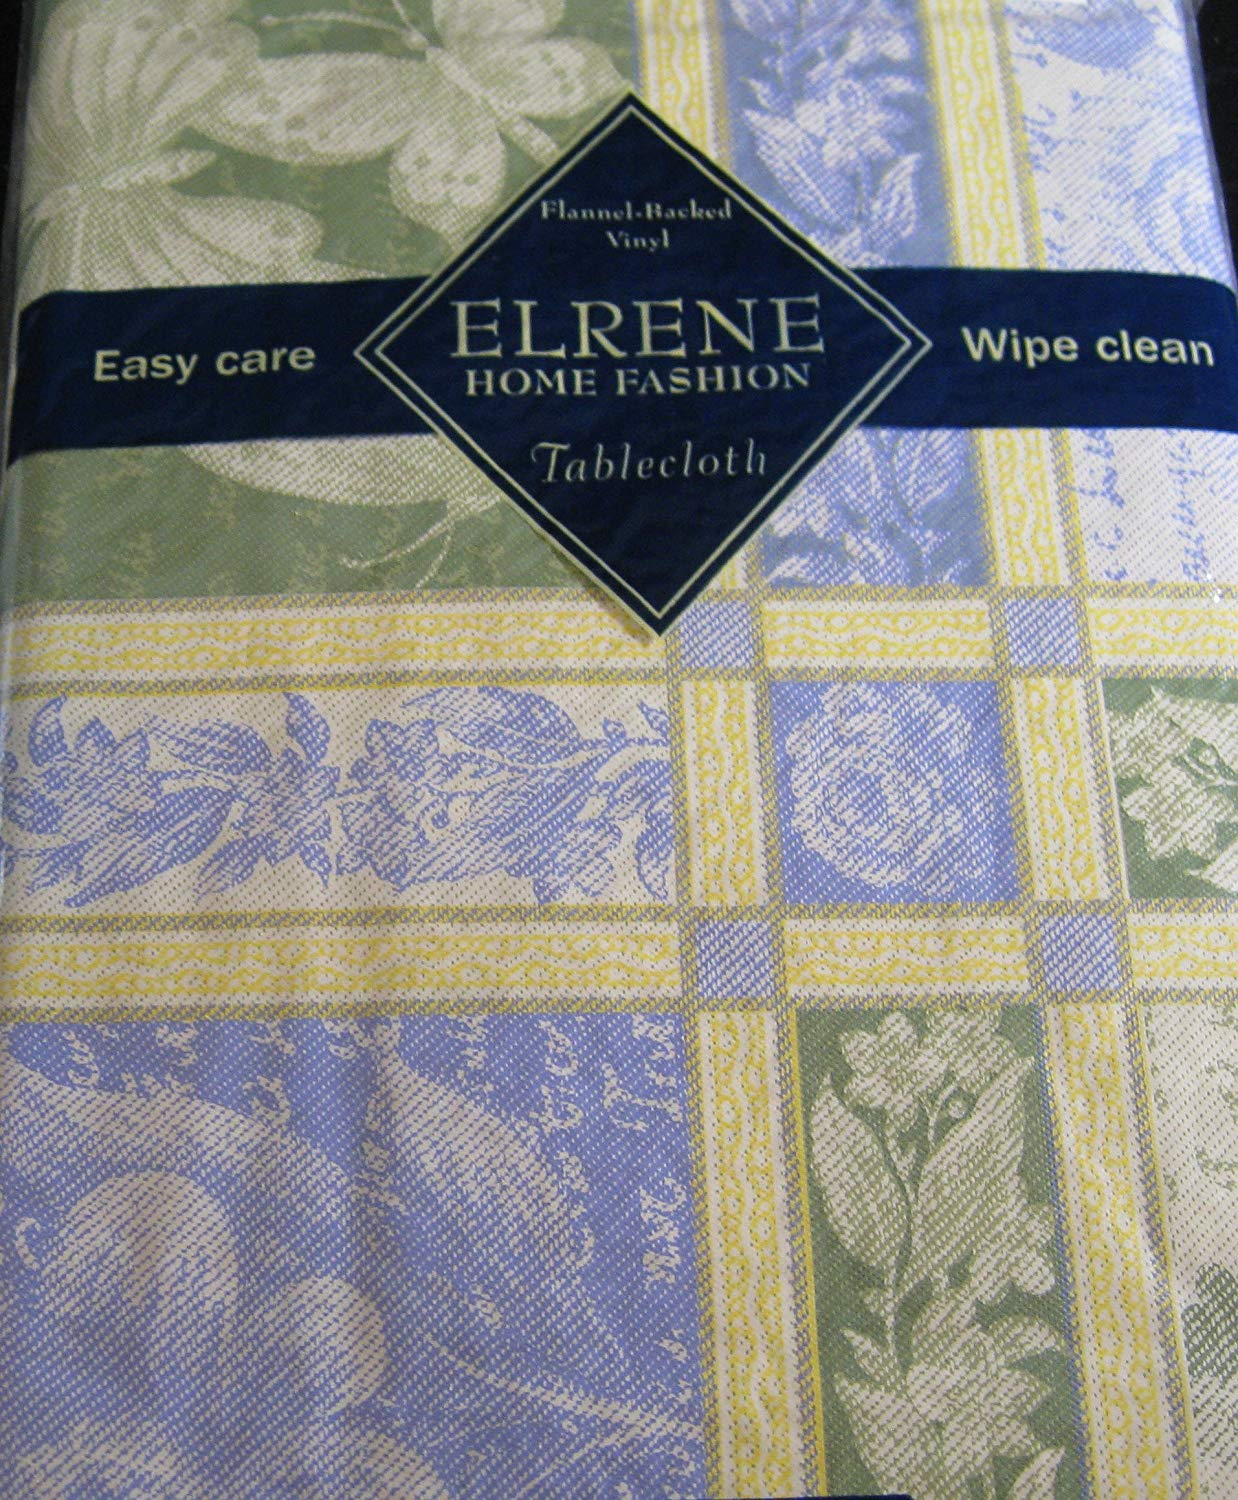 Flannel Backed Vinyl Tablecloths - Jacquard By Elrene - Assorted Sizes - Oblong and Round (60 Round)